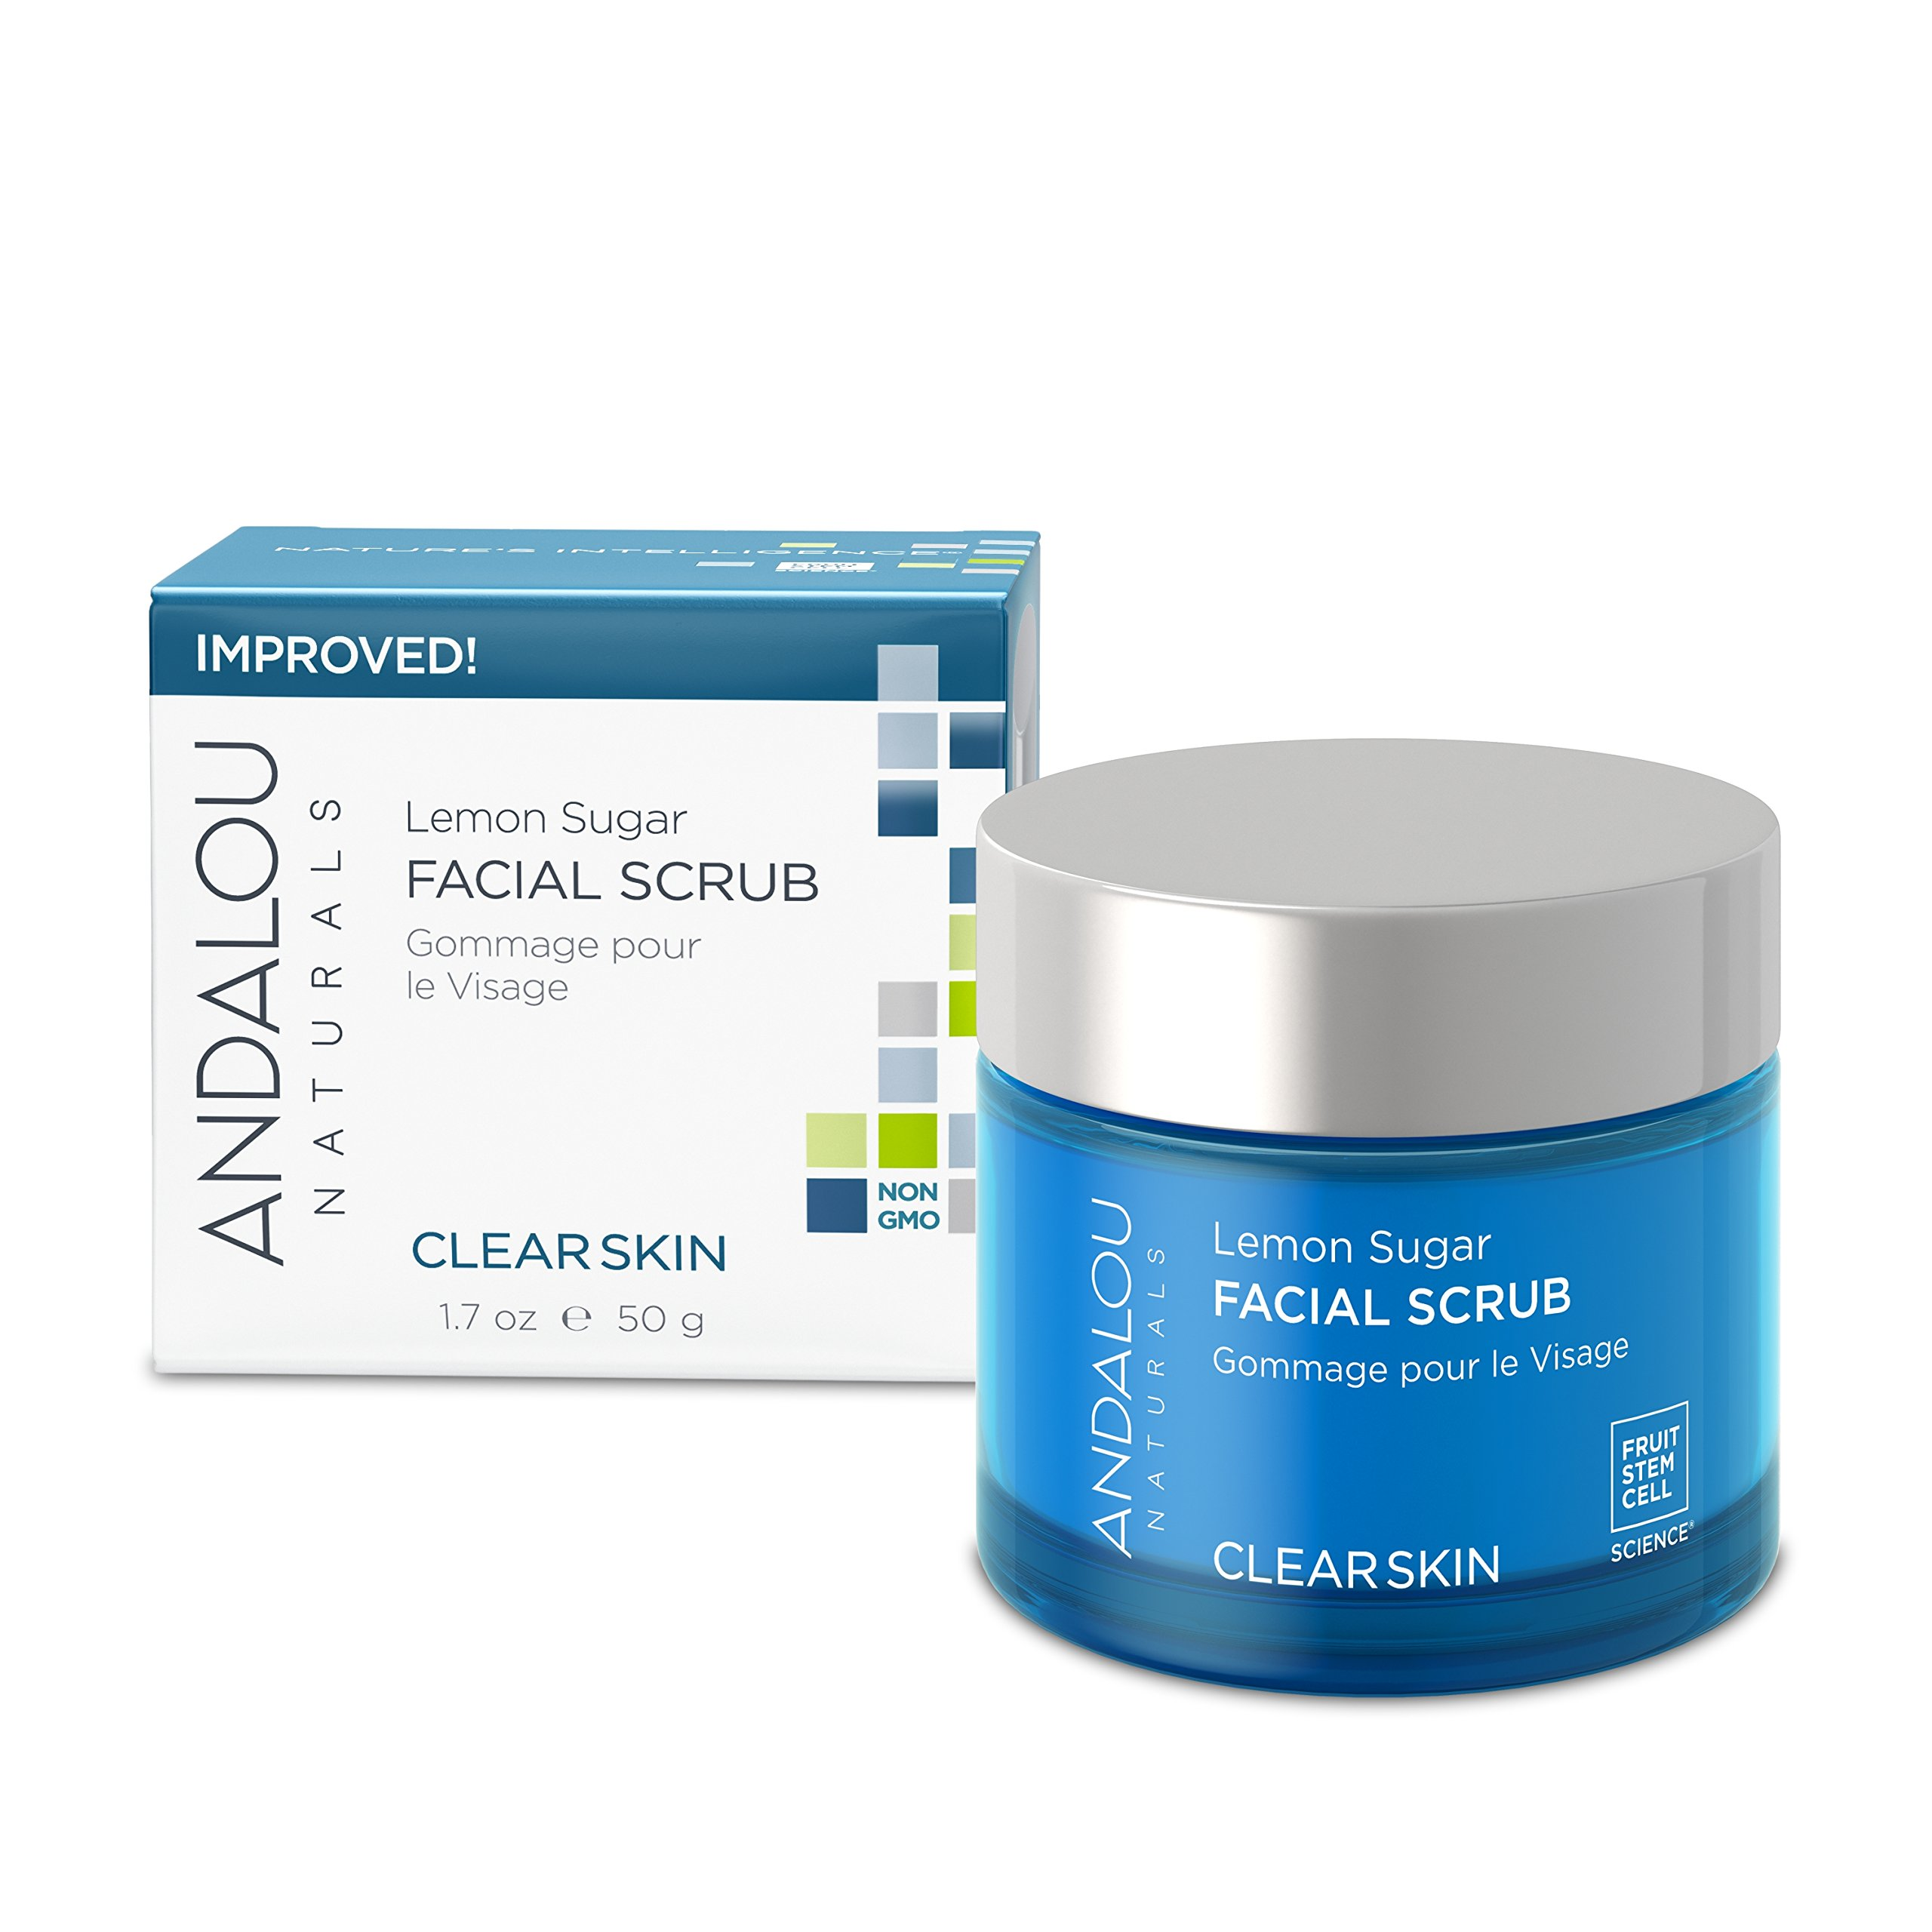 Andalou Naturals Lemon Sugar Facial Scrub, 1.7 oz, Gently Exfoliates and Cleanses for a Clearer, Brighter, and Balanced Looking Complexion, with Meyer Lemons and Manuka Honey